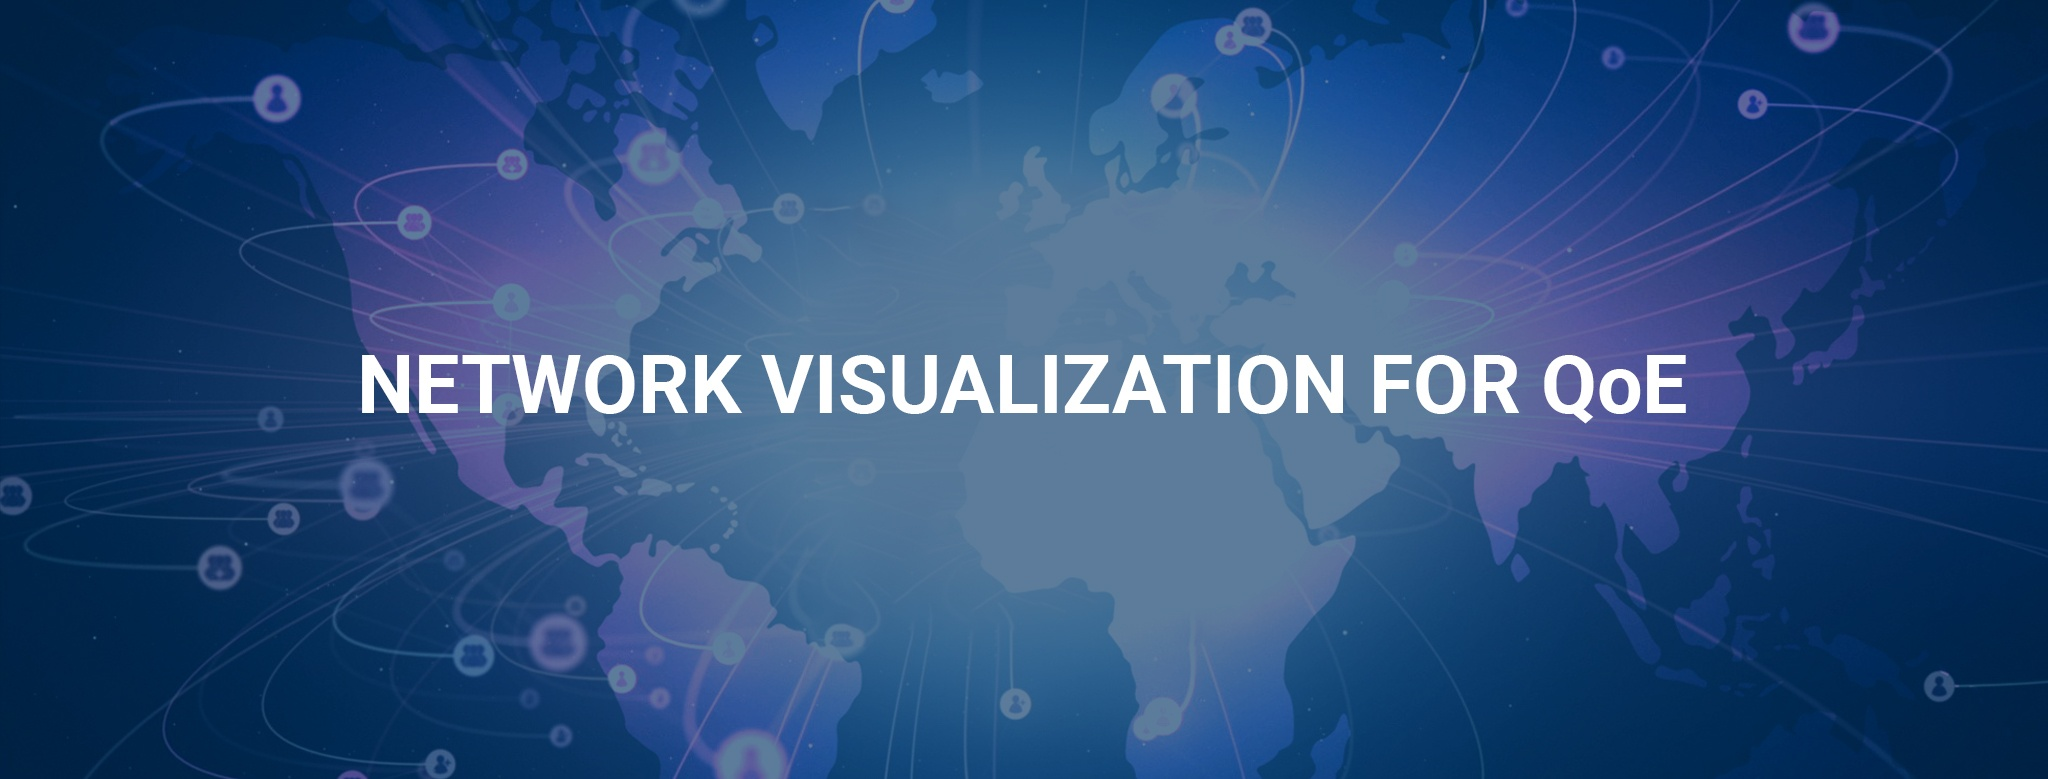 Network Visualization for Quality of Experience